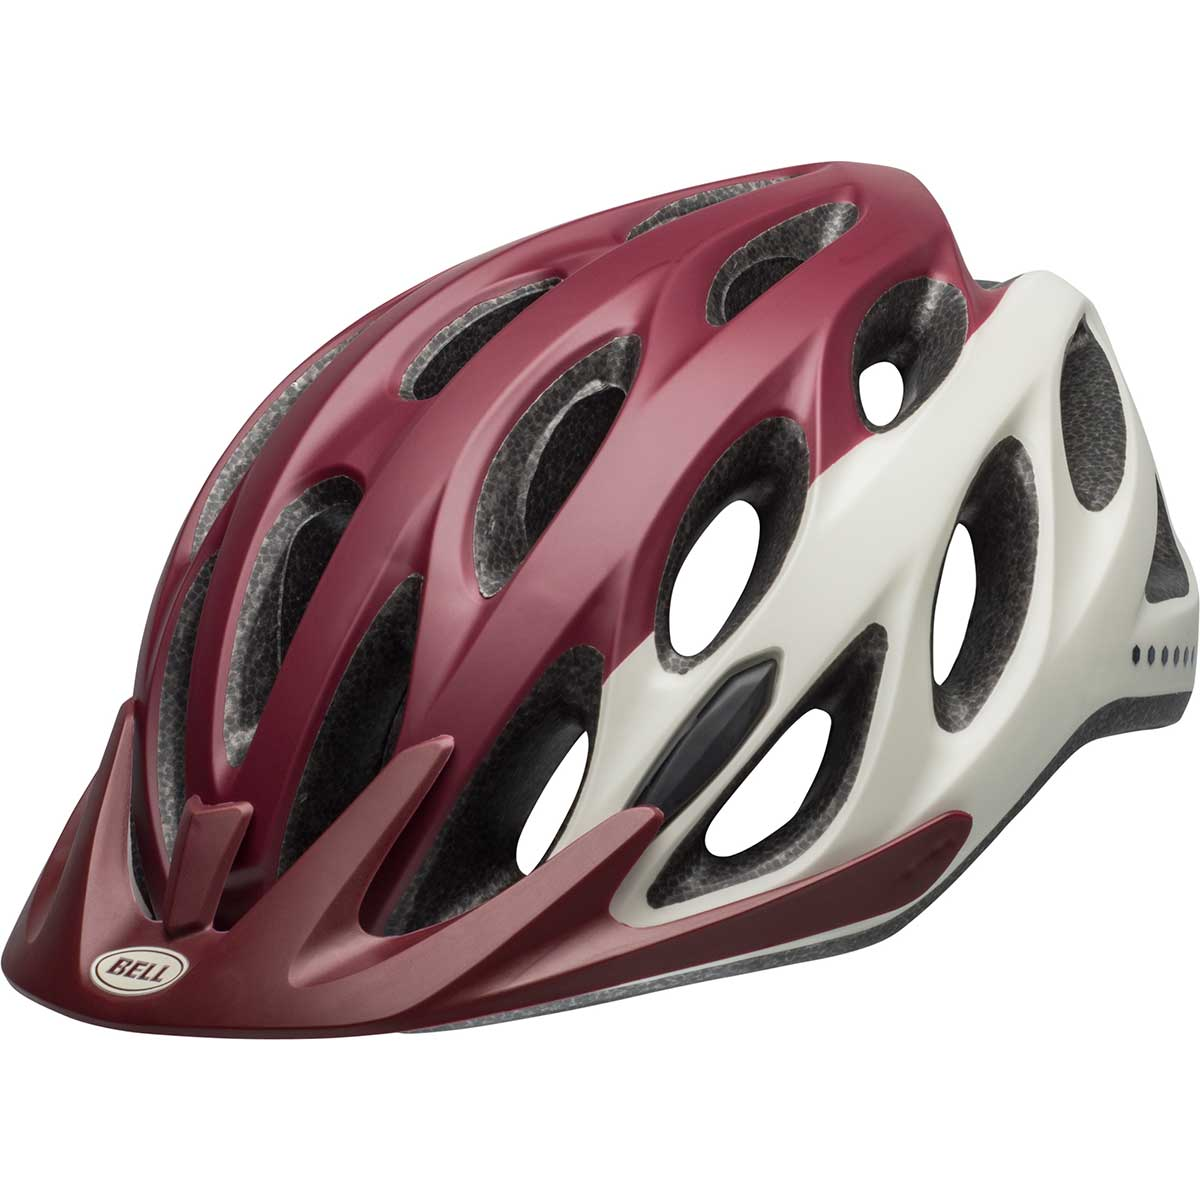 Bell women's Coast W bike helmet in Virago Maroon and Slate and Sand